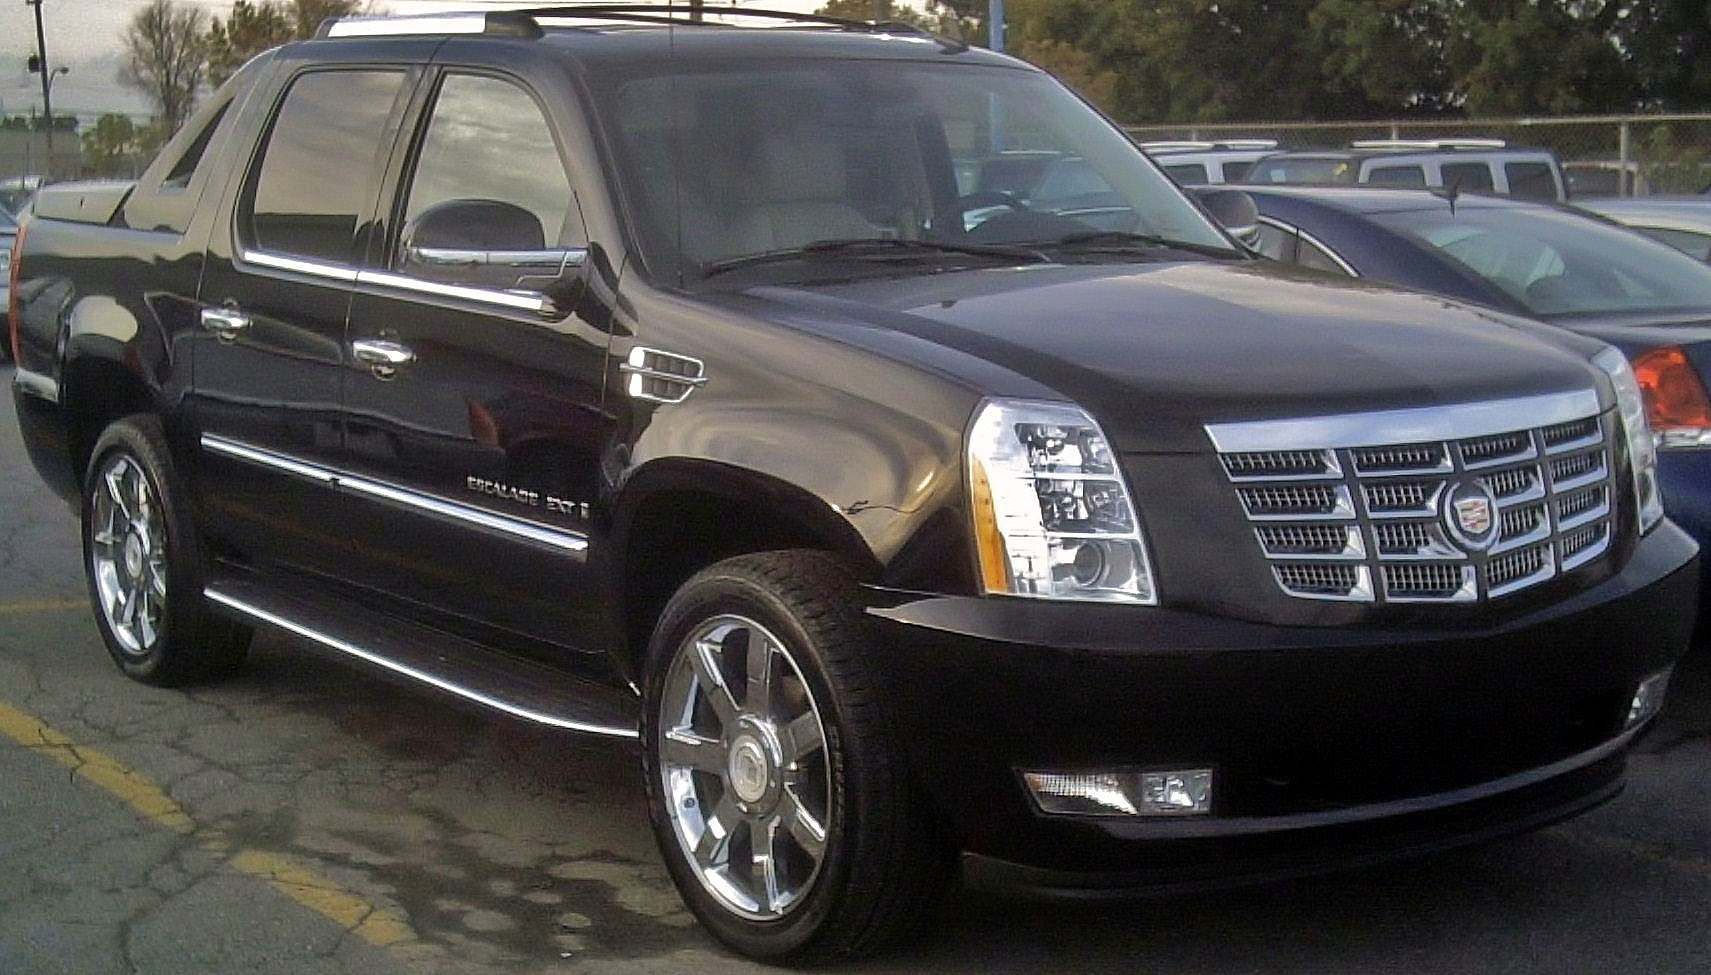 2012 Cadillac Escalade Platinum For Sale >> File:2007 Escalade EXT.JPG - Wikimedia Commons